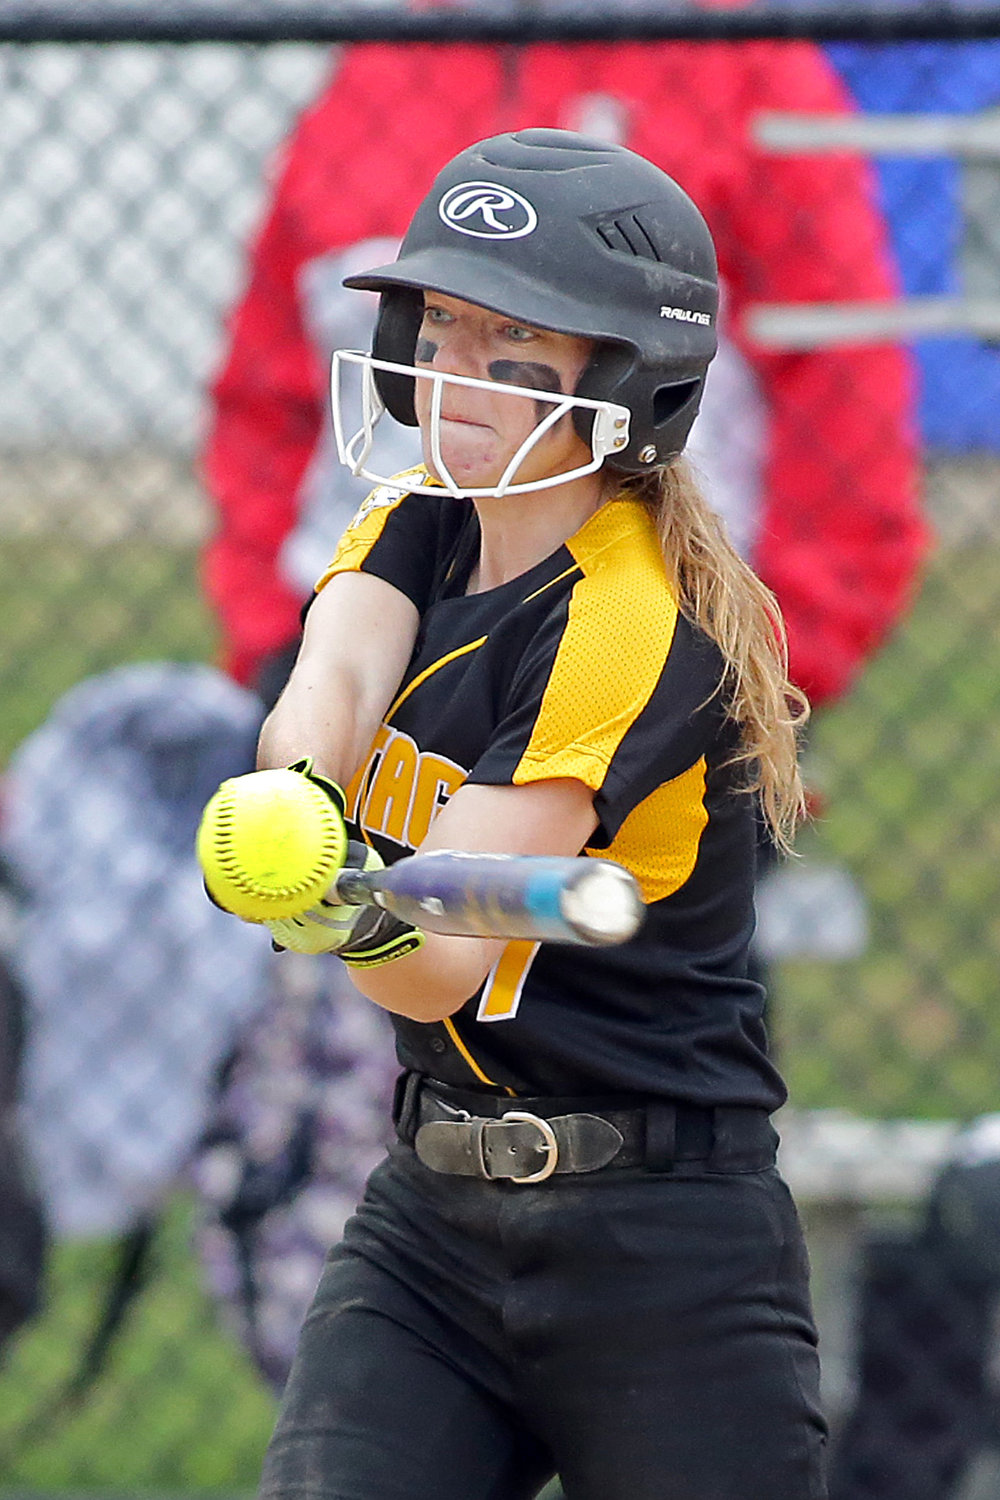 Senior leadoff batter Kayley Butcher tripled and scored in a seven-run fourth inning to help Wantagh beat Mineola, 14-3, on May 2, on the way to a conference title.